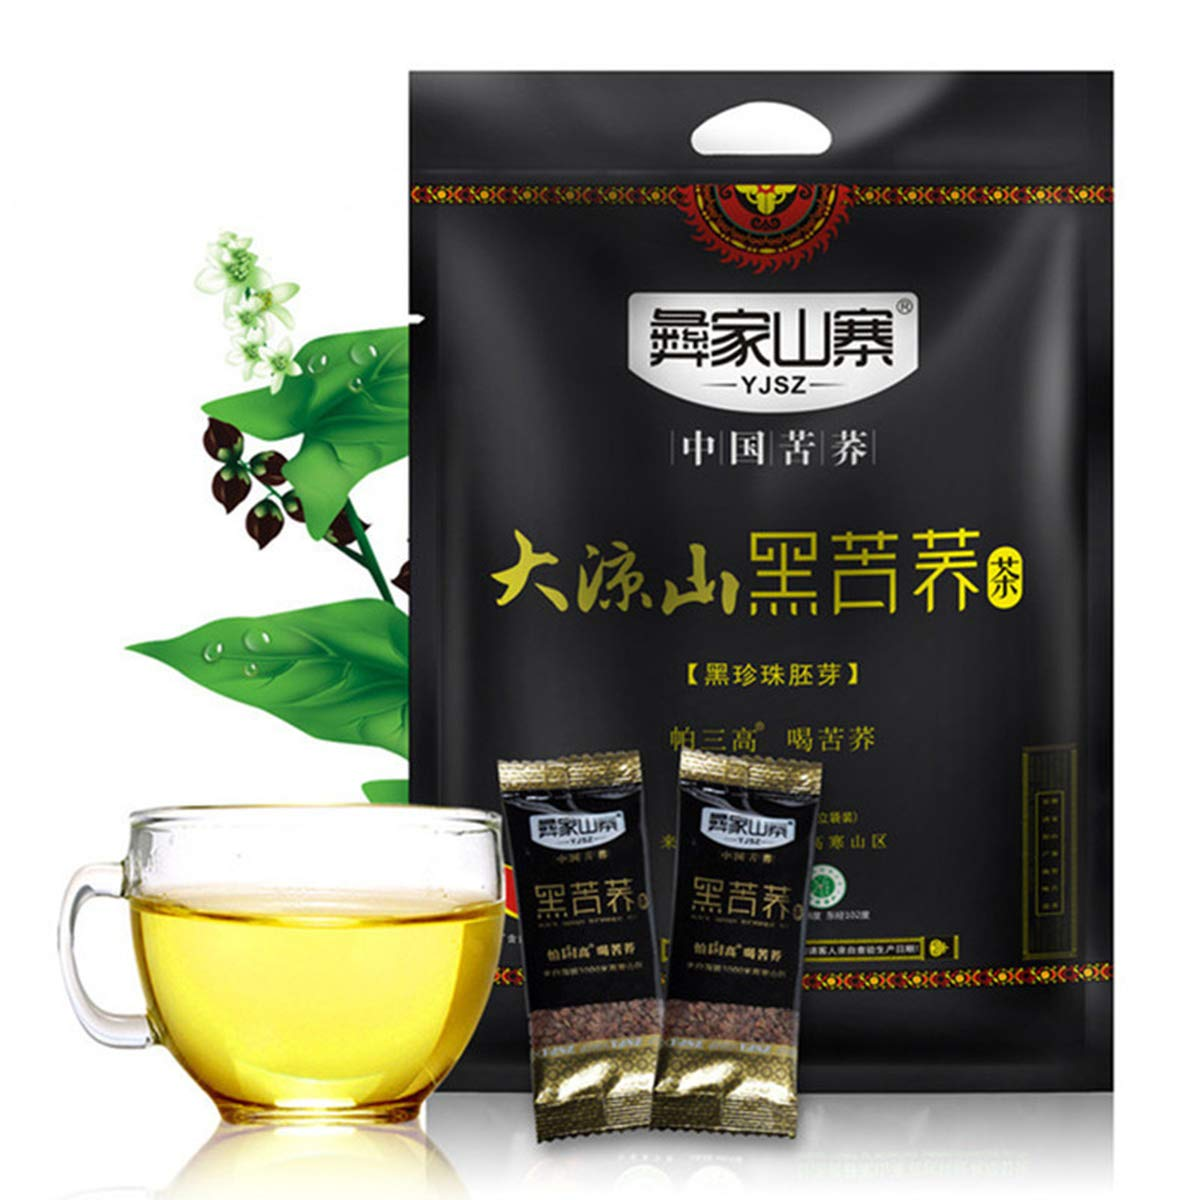 Black Buckwheat Tea Black Tartary Buckwheat Plantule Full Chinese Tea 1000g (2.2LB) Herbal Tea Scented Tea Flower Tea Botanical Tea Herbs Tea Green Tea Green Food Flowers Tea Health Tea 614GBKjfJYL